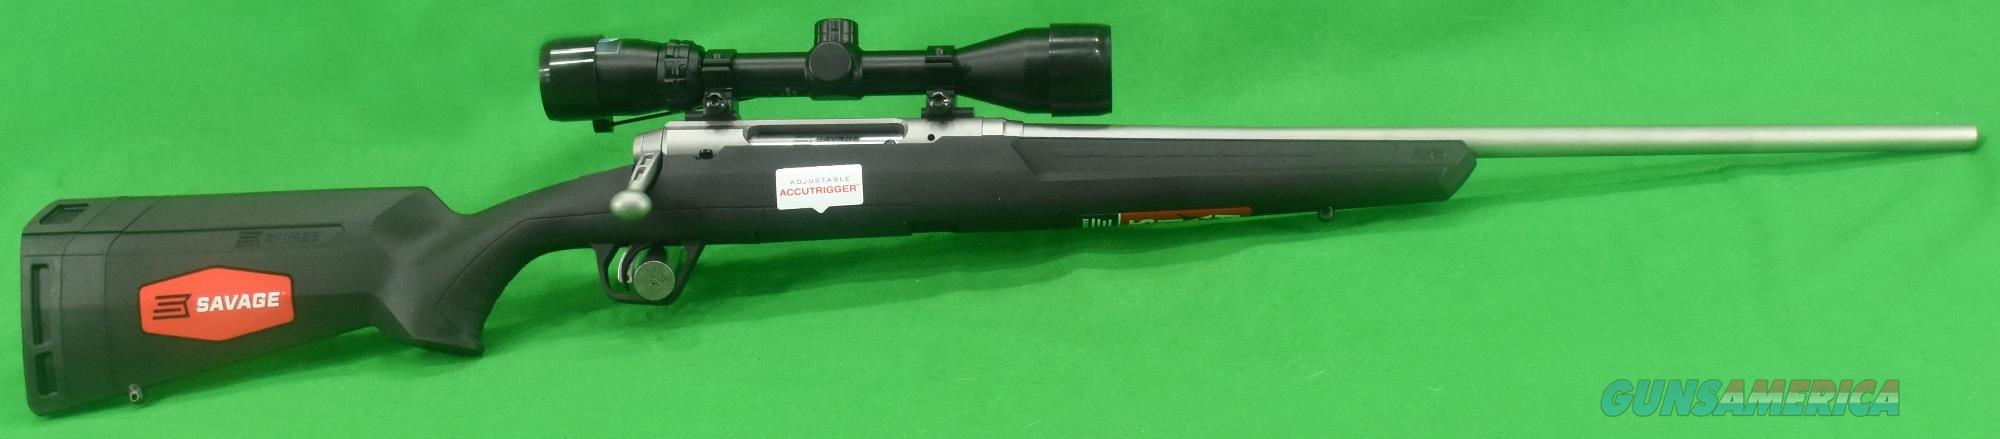 Axis II XP Stainless 243Win 22In  57103  Guns > Rifles > Savage Rifles > Axis